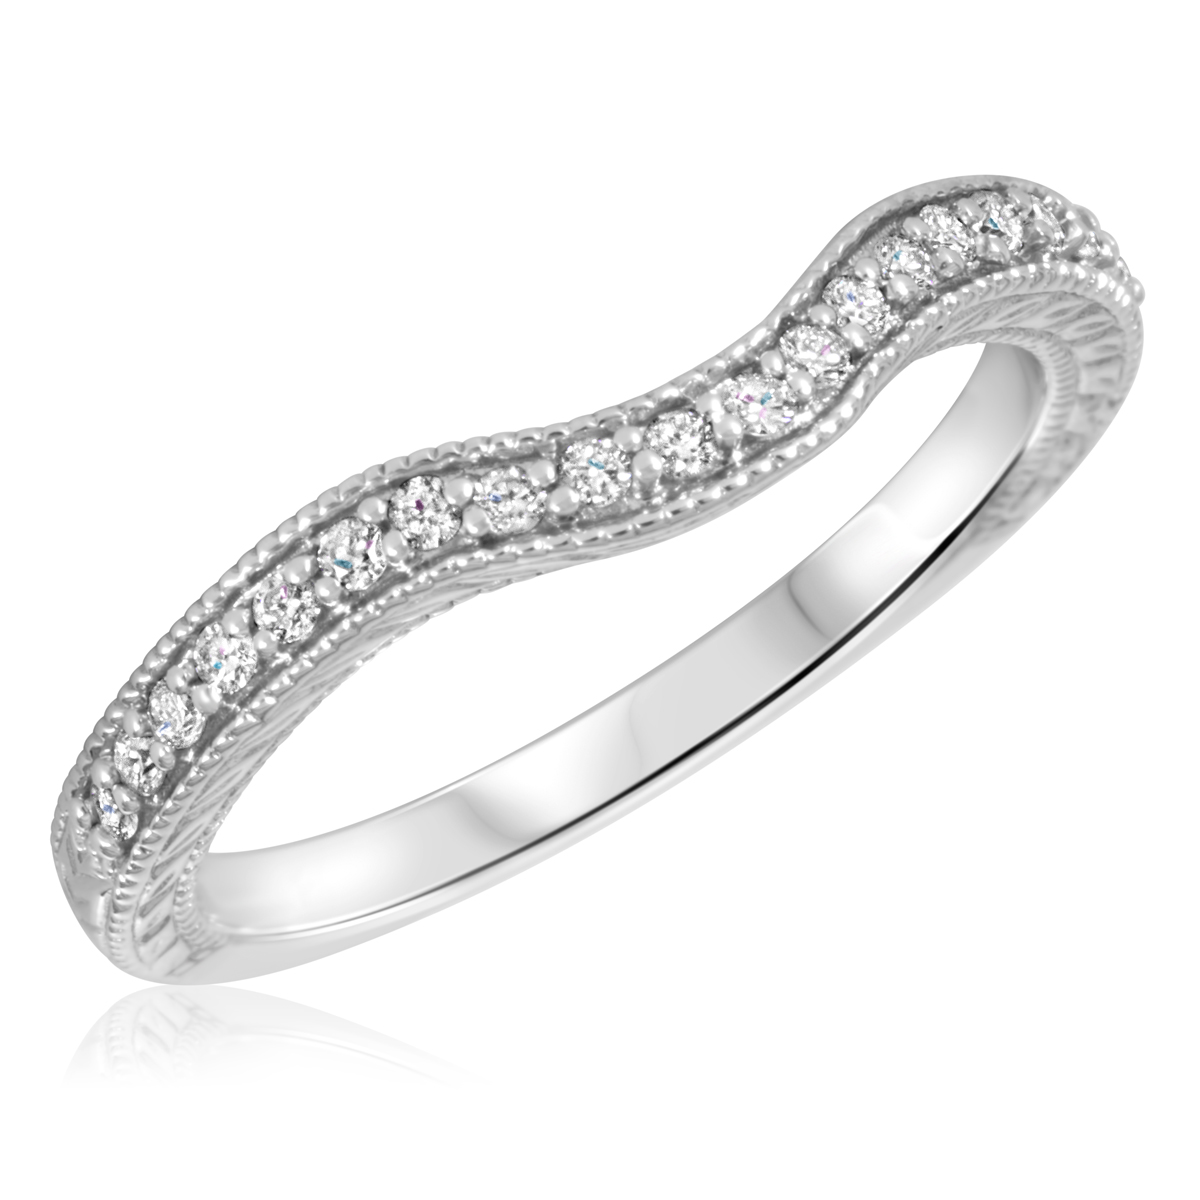 1/6 Carat T.W. Round Cut Diamond Ladies Wedding Band 10K White Gold- Size 8